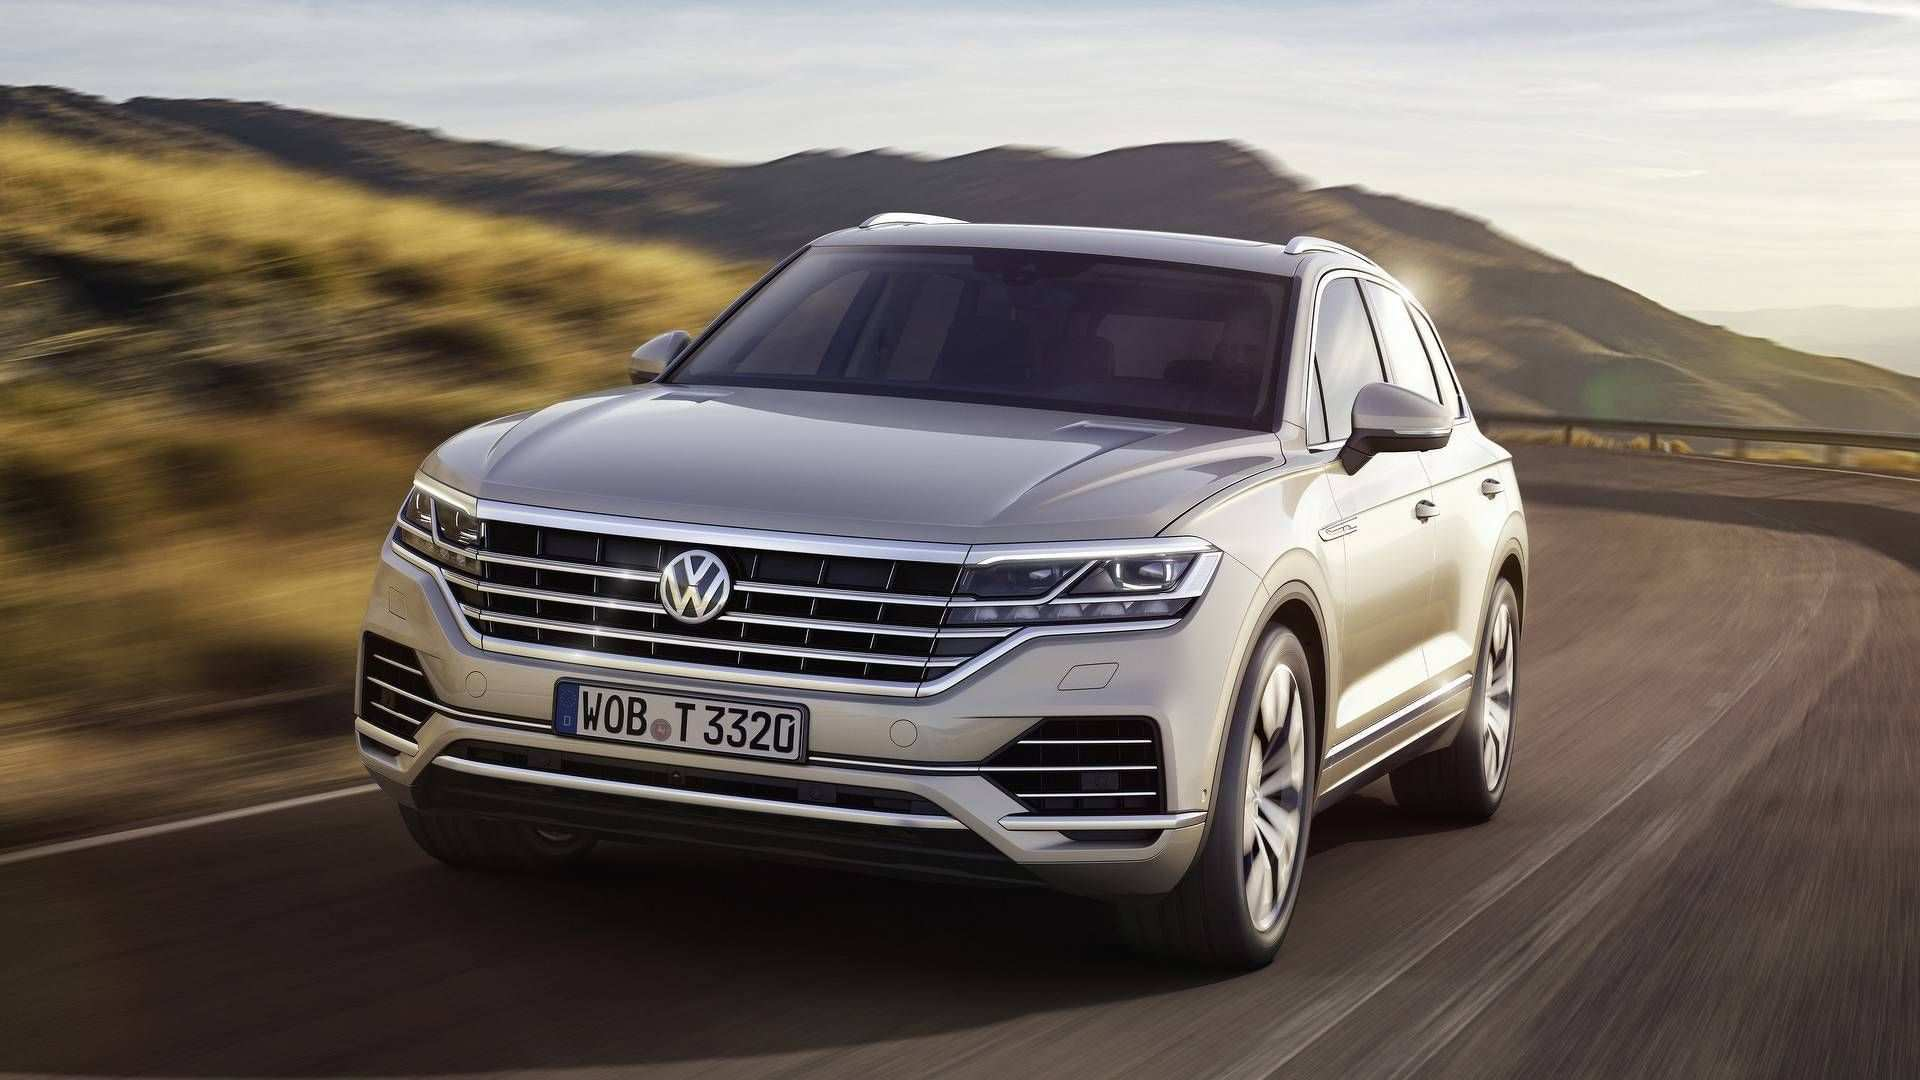 36 New Volkswagen Lancamento 2019 Price Reviews with Volkswagen Lancamento 2019 Price